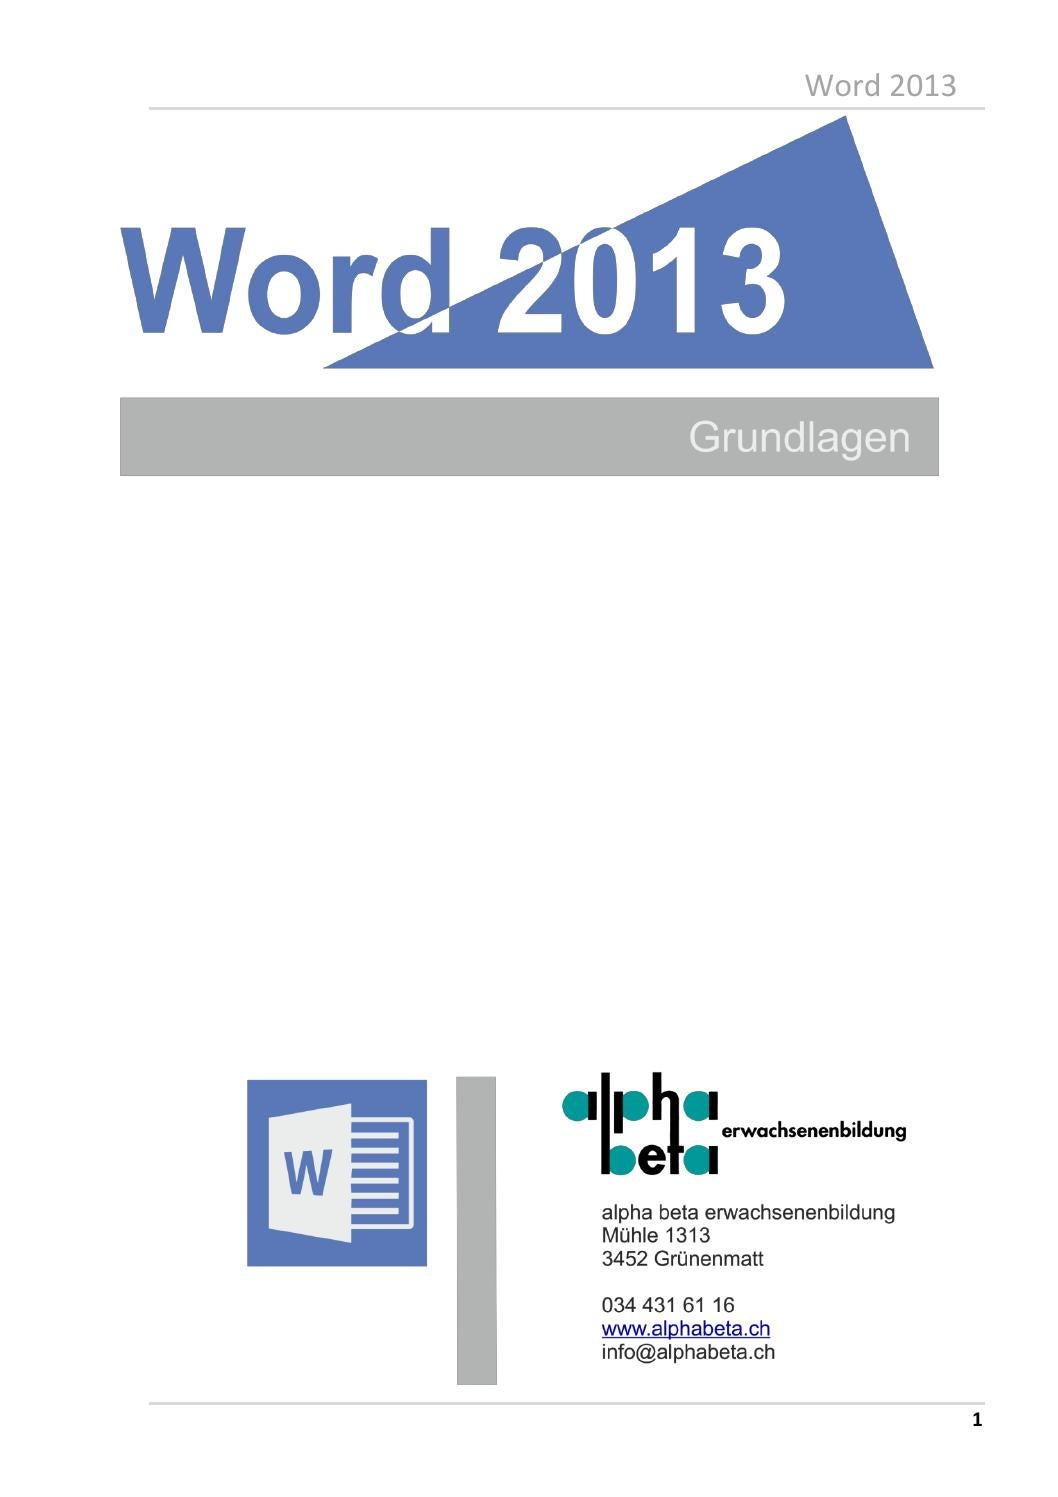 Word 2013 grundlagen by alphabeta - issuu